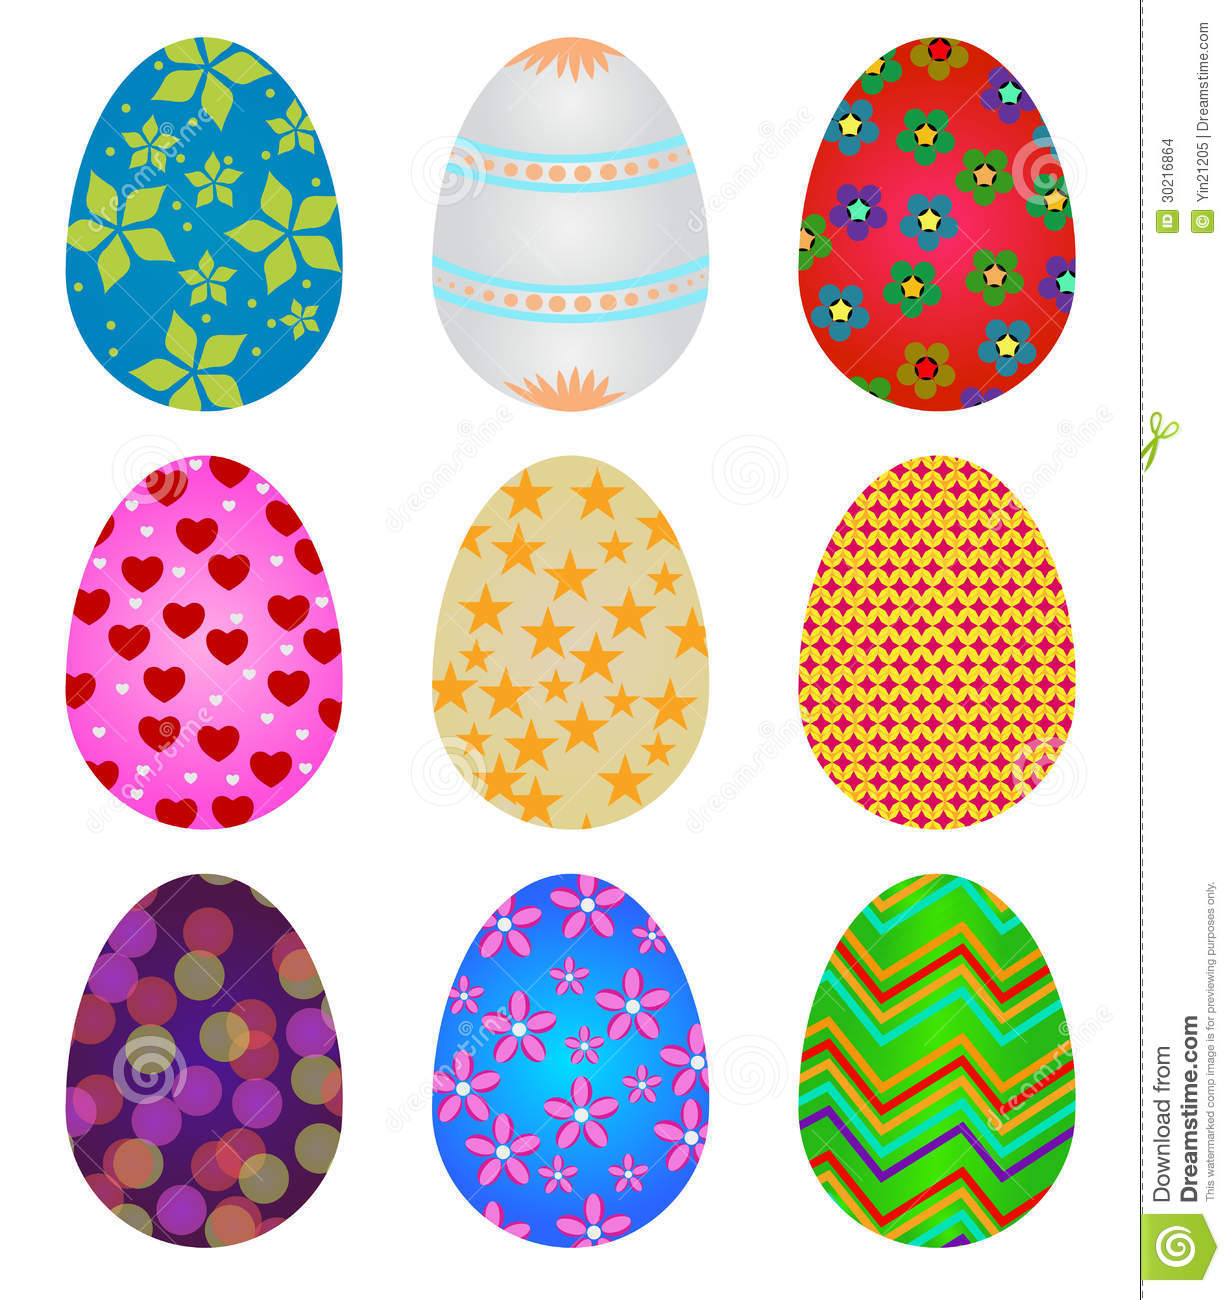 Set of colorful decorative Easter eggs isolated on white Nzqp6NtV